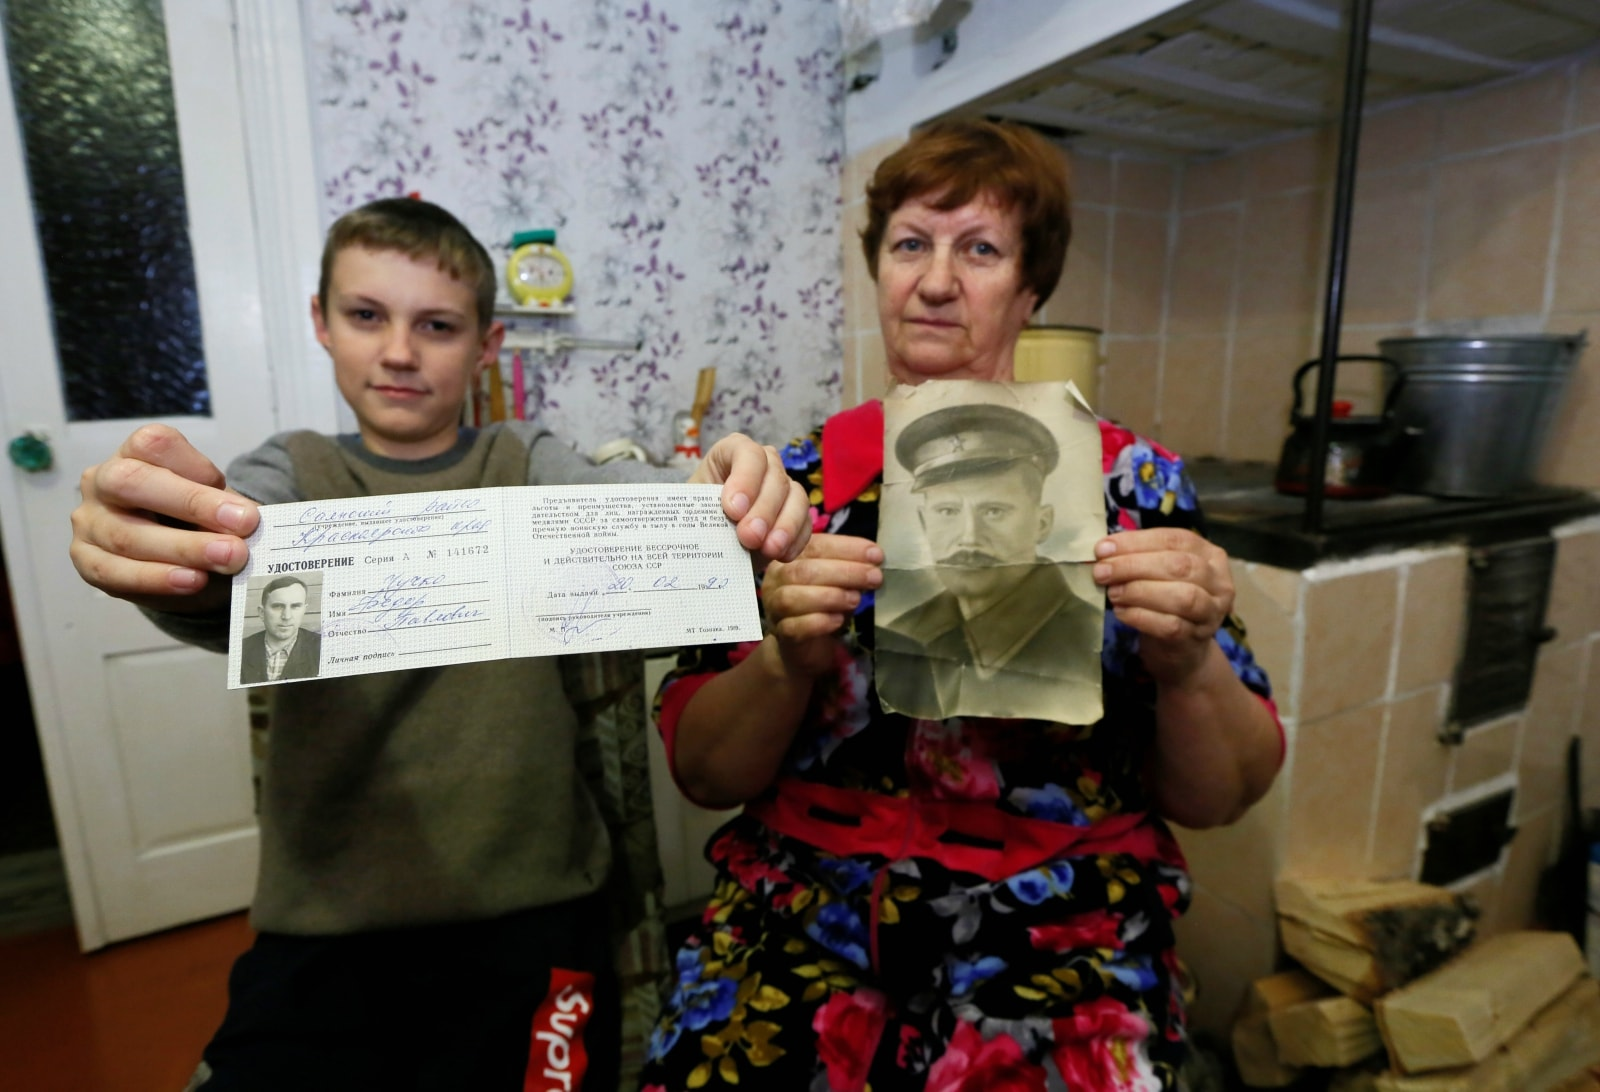 Local resident Vera Lazareva, 66, resident of a Siberian settlement founded as a logging camp and part of the Soviet Union's Gulag prison labour system, and her grandson Grigory, 13, show photographs of their late relatives while posing for a picture at a house in Tugach southeast of Krasnoyarsk, Russia October 29, 2018. The photographs show guard of Kraslag prison camp Pavel Yarg (R) and inmate Fyodor Chuchko. REUTERS/Ilya Naymushin